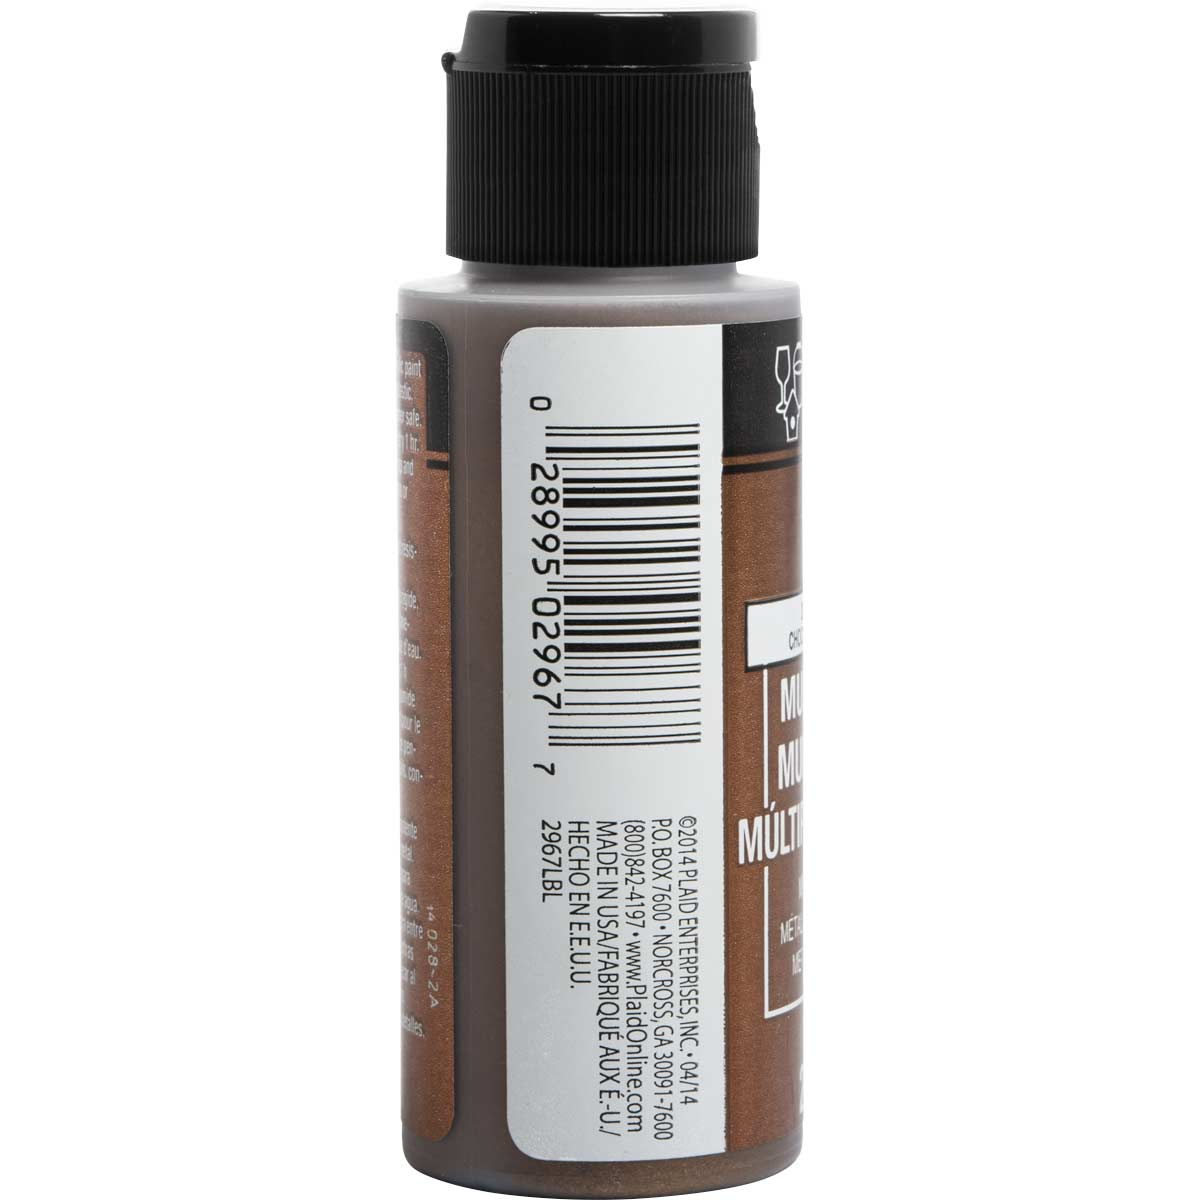 FolkArt ® Multi-Surface Metallic Acrylic Paints - Chocolate Brown, 2 oz.